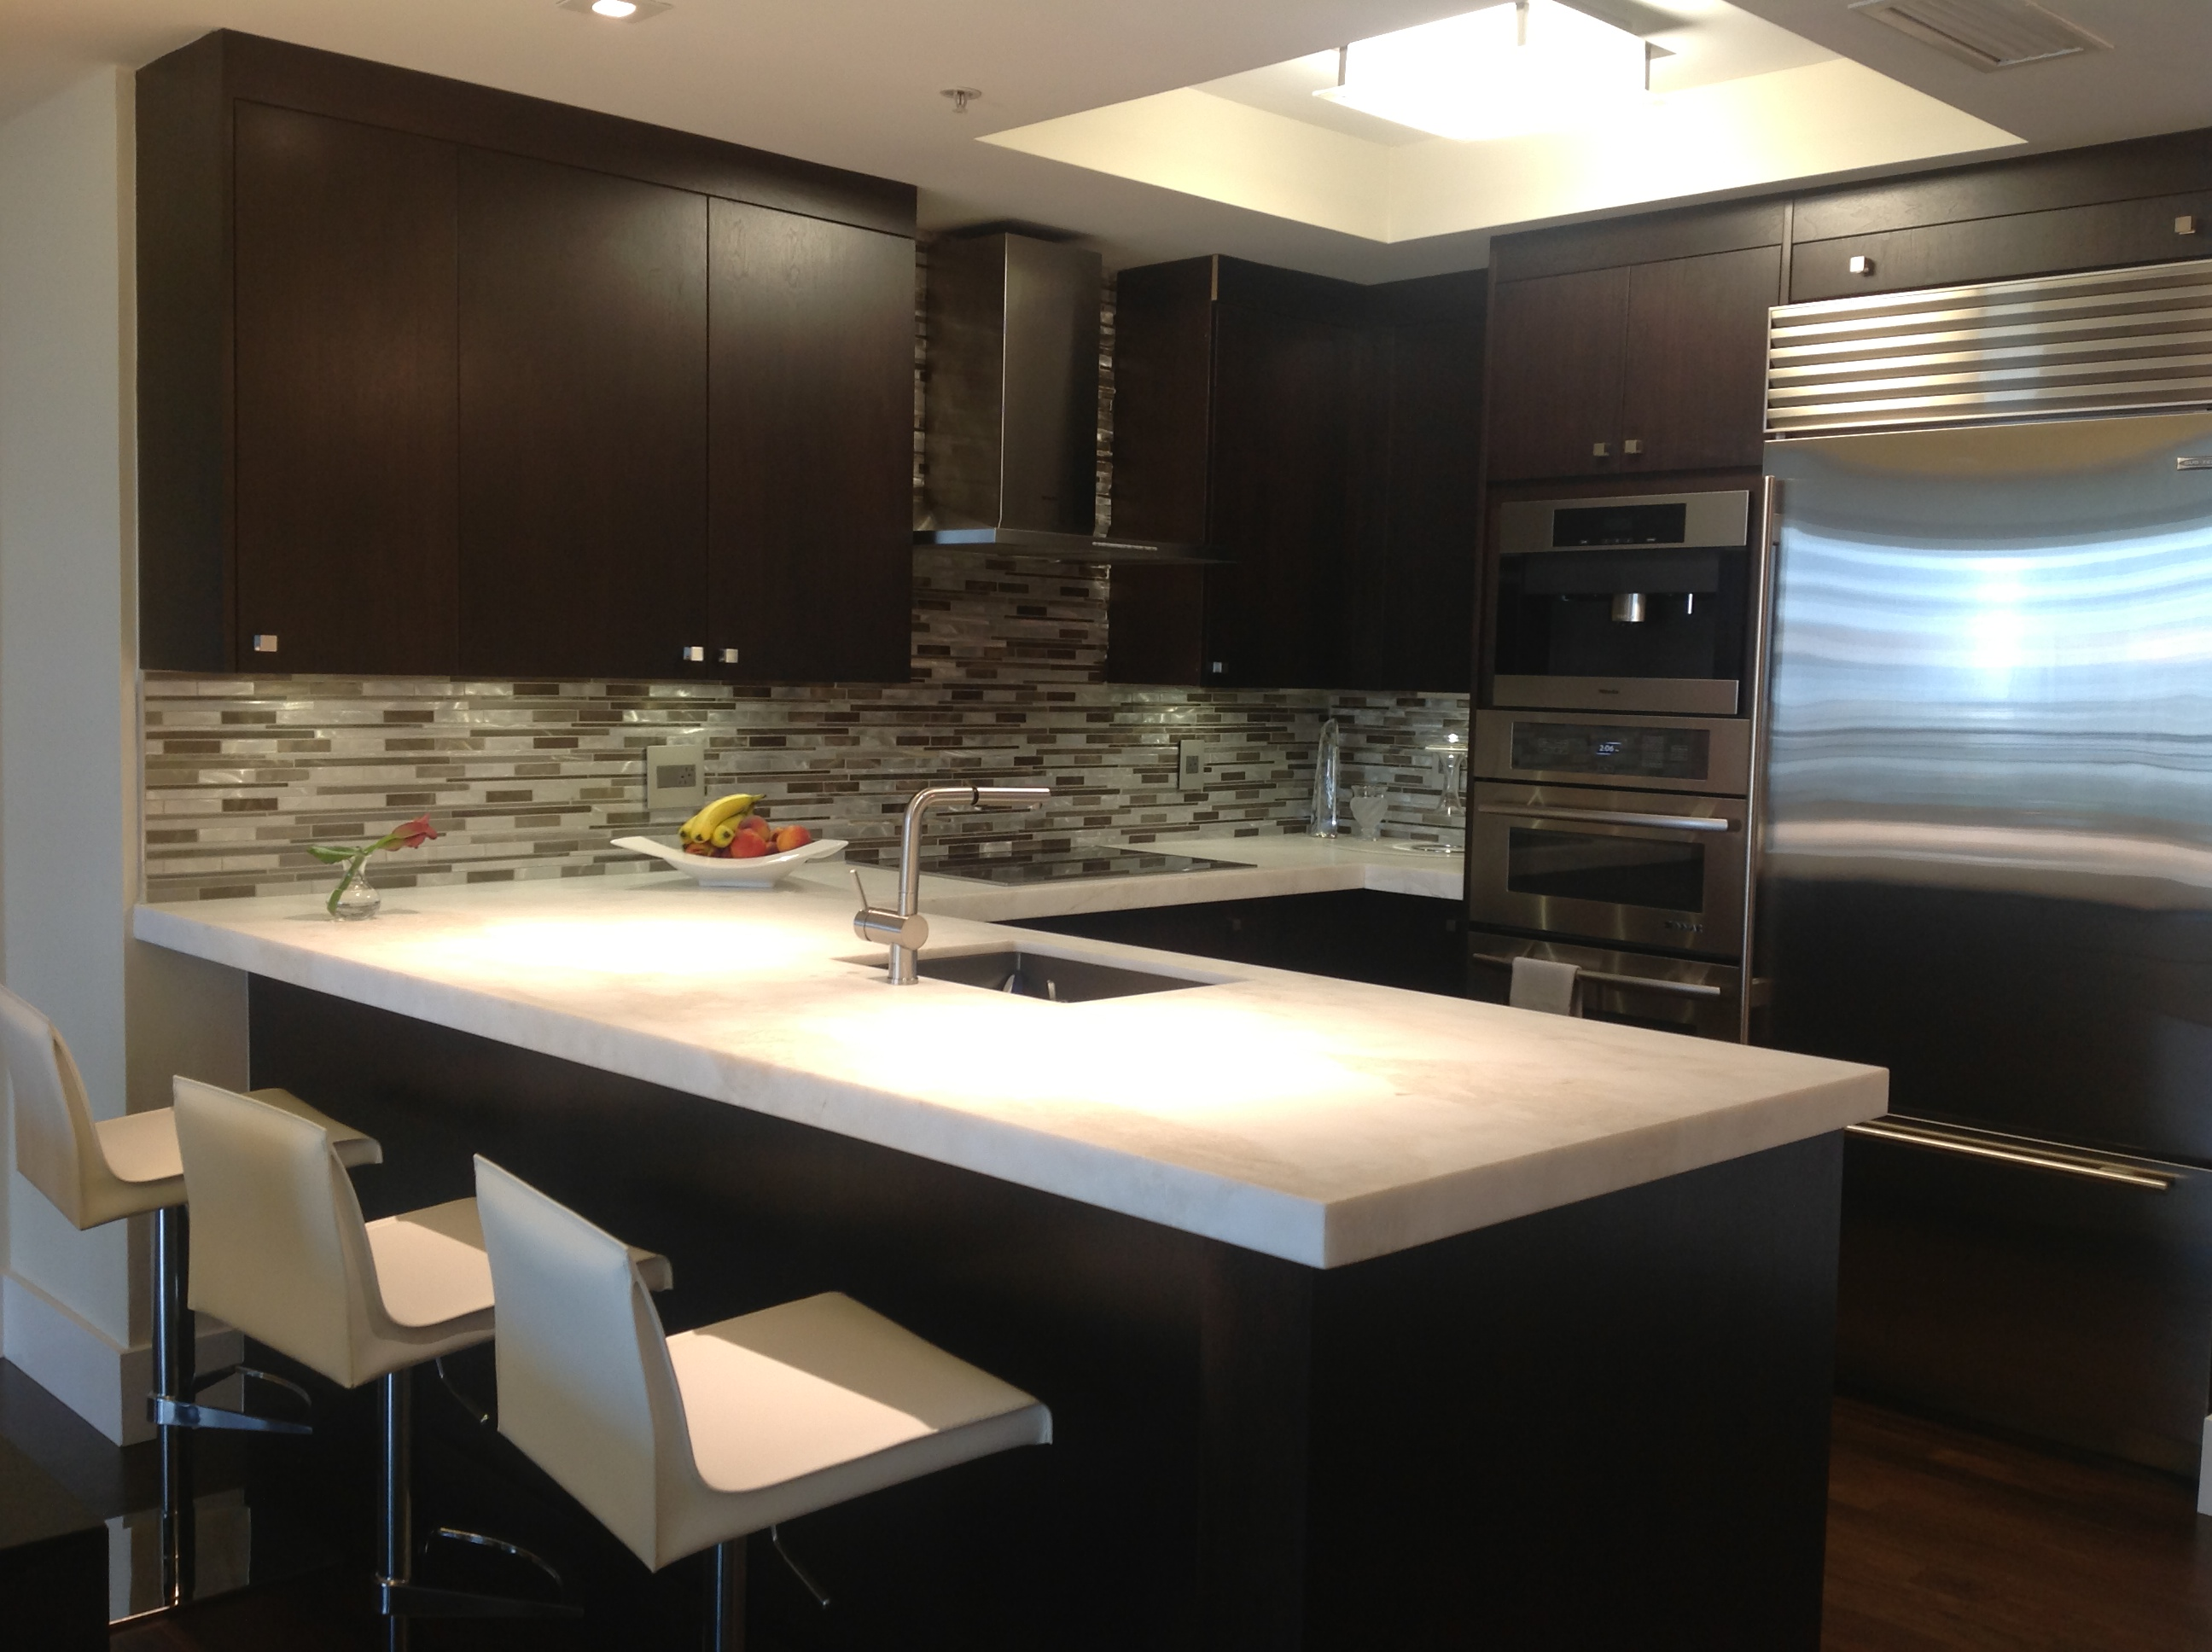 Custom Kitchen Cabinets Designs jandj custom kitchen cabinets company | luxurious kitchen